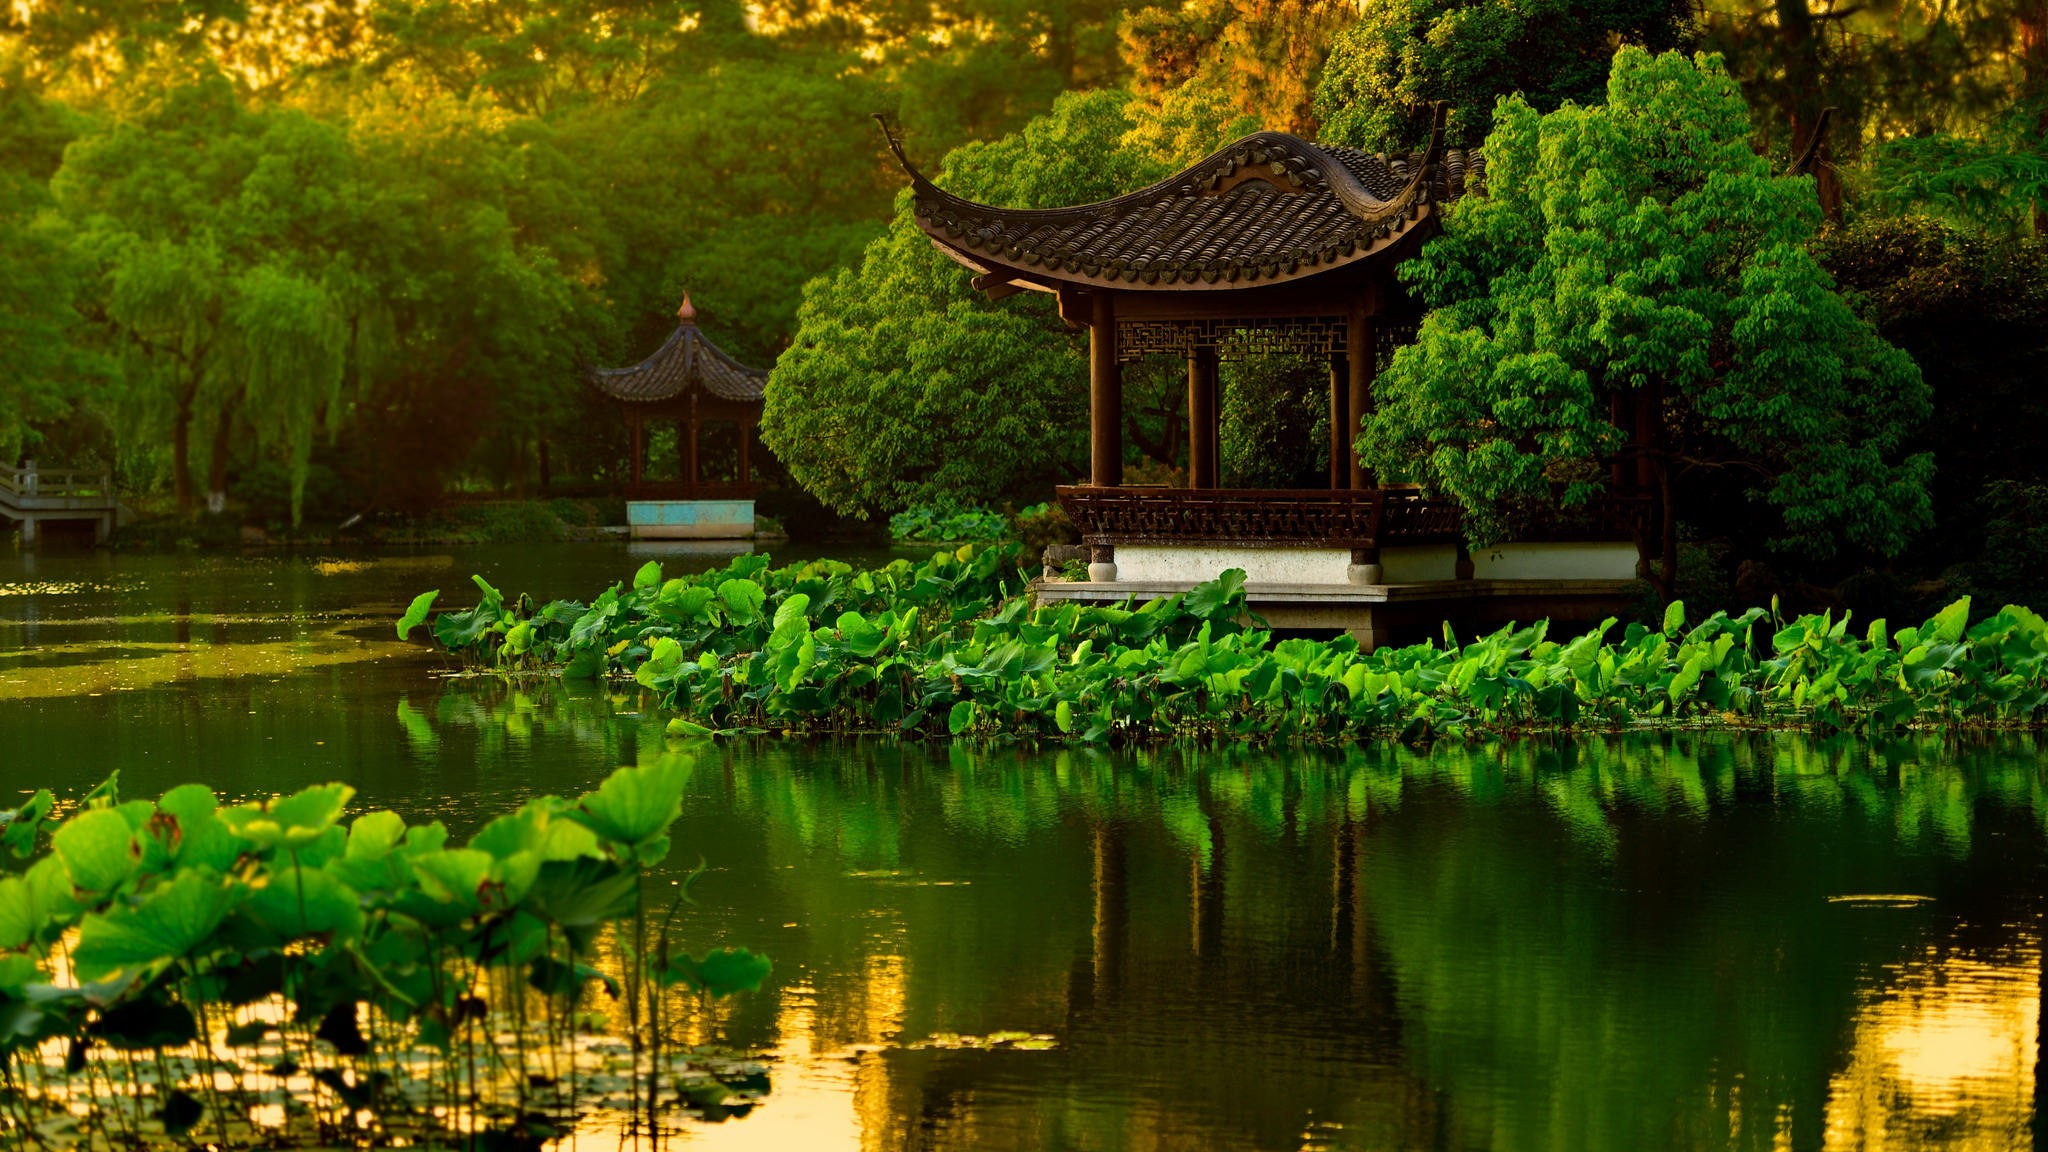 Res: 2048x1152, landscape japanese garden lake wallpaper and background